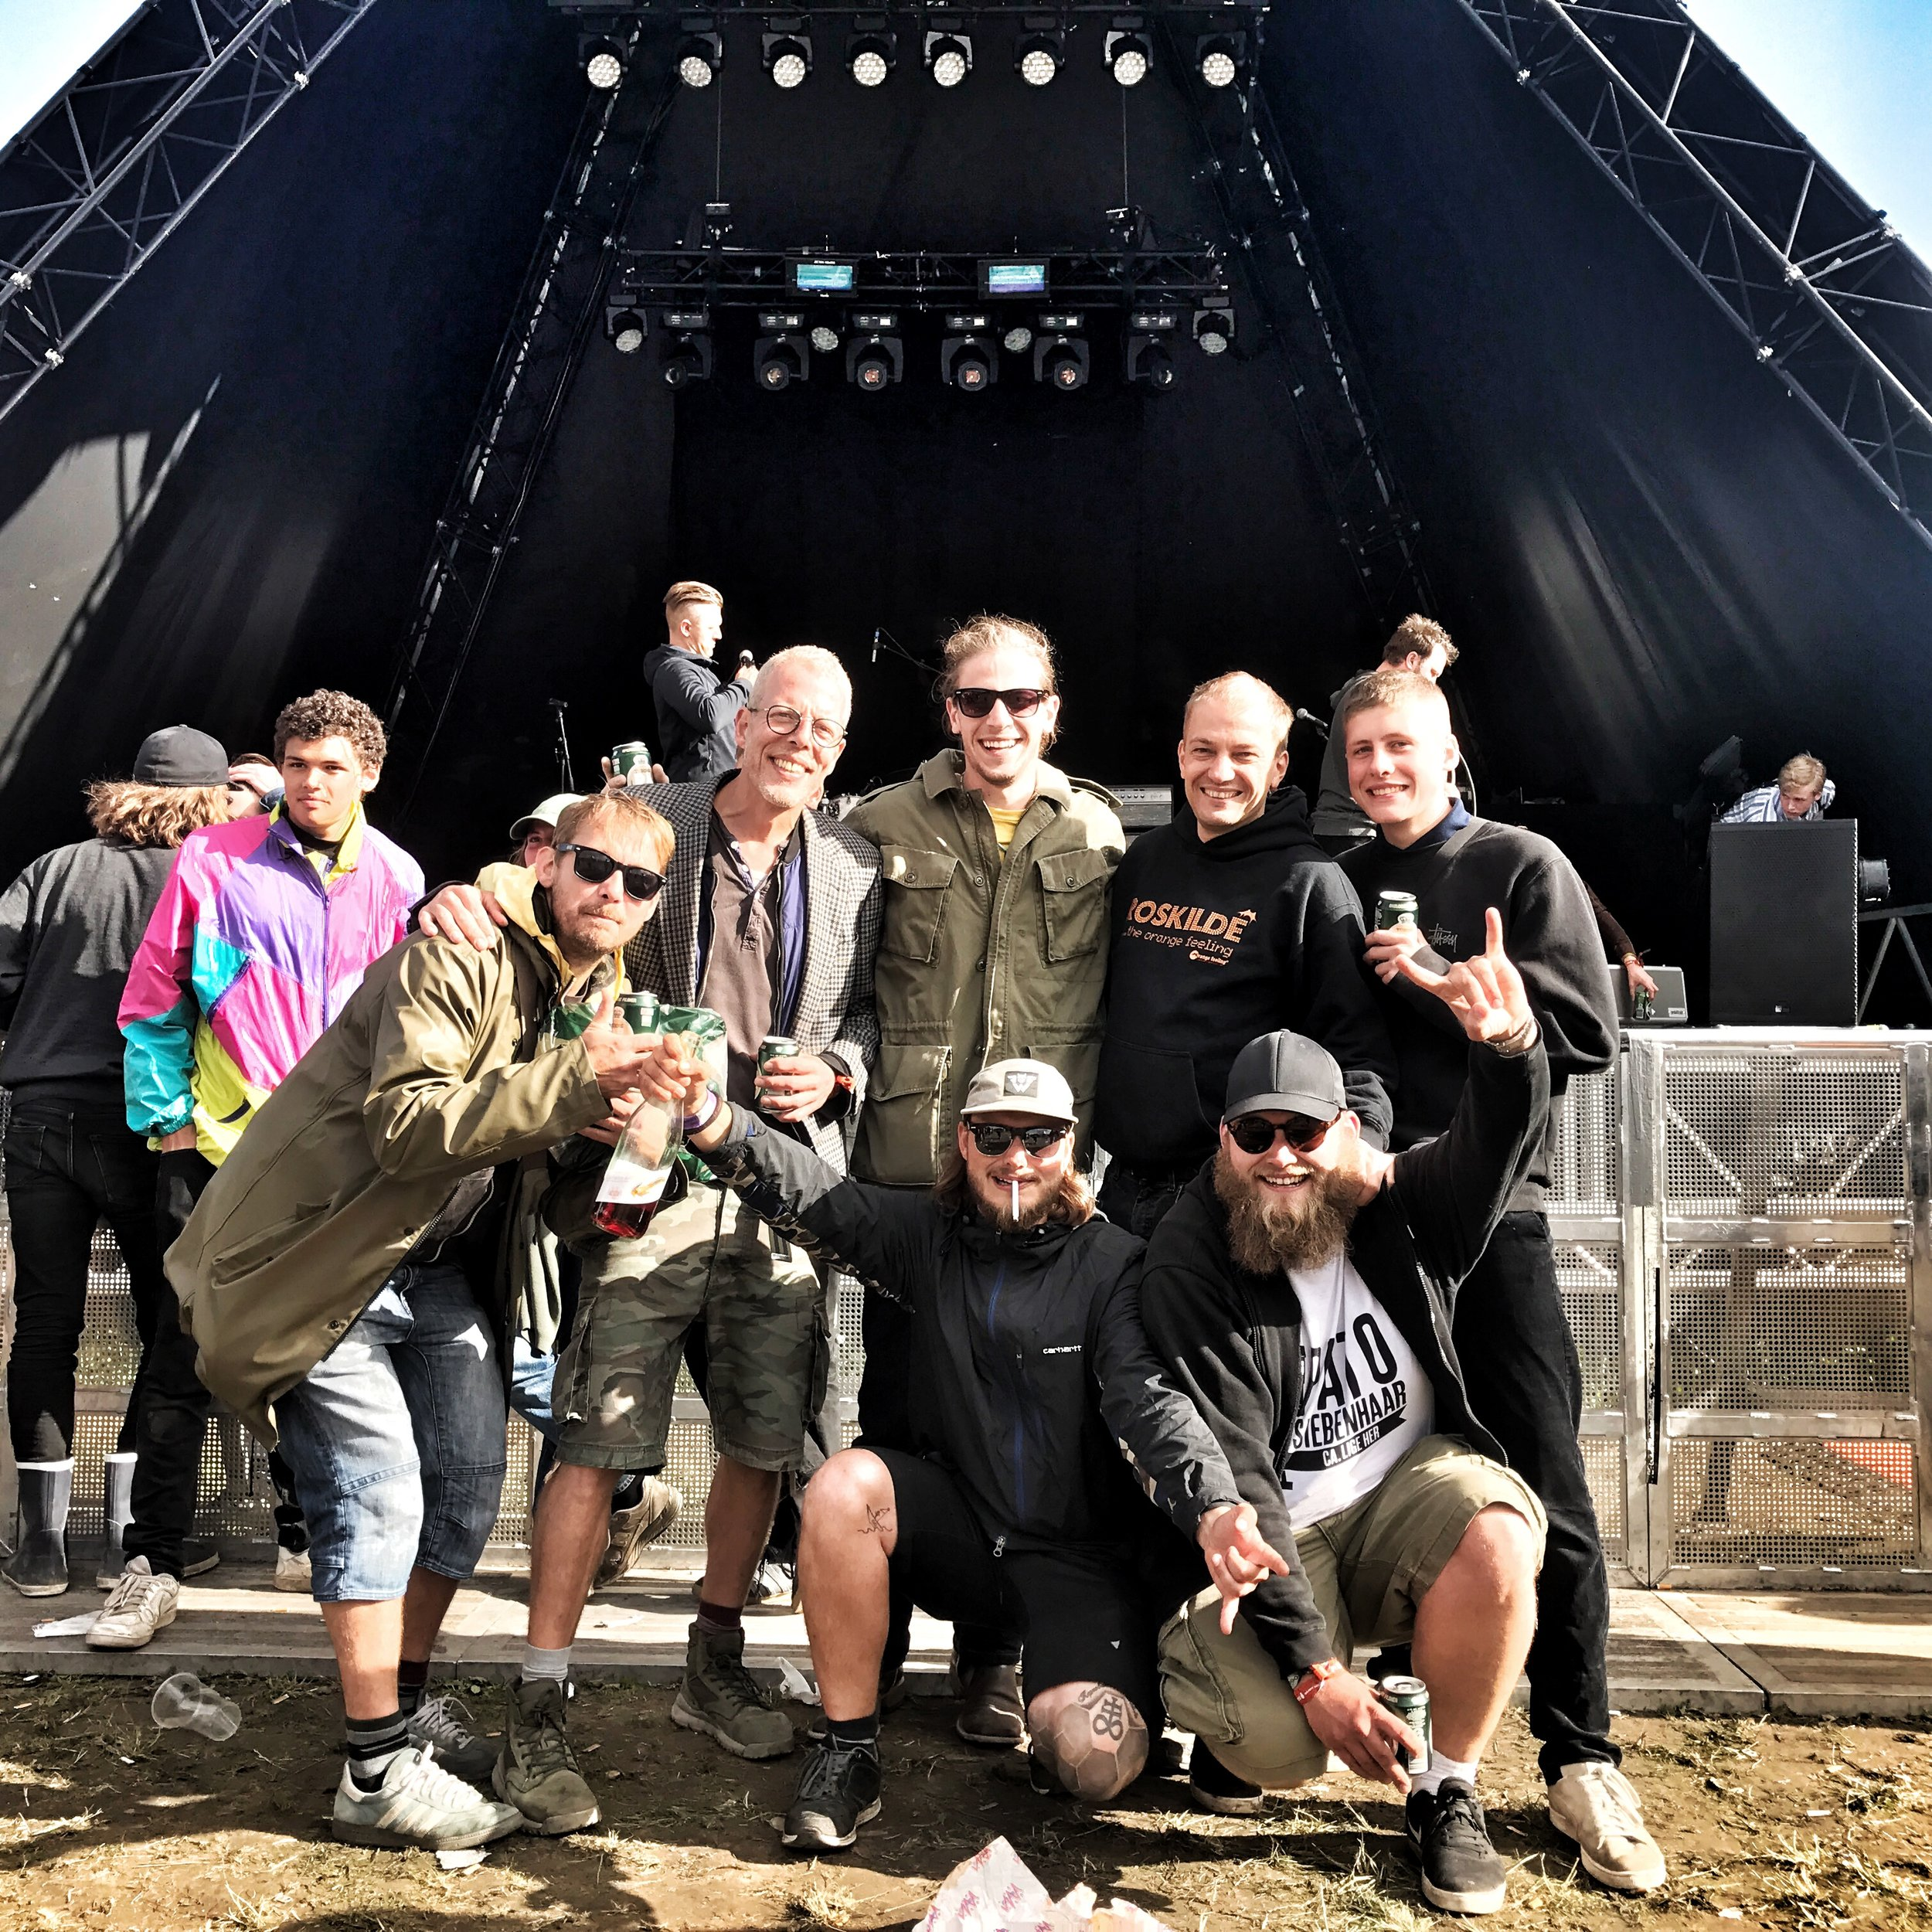 My Roksilde/Folkets Madhus crew - Thanks for the great festival guys!